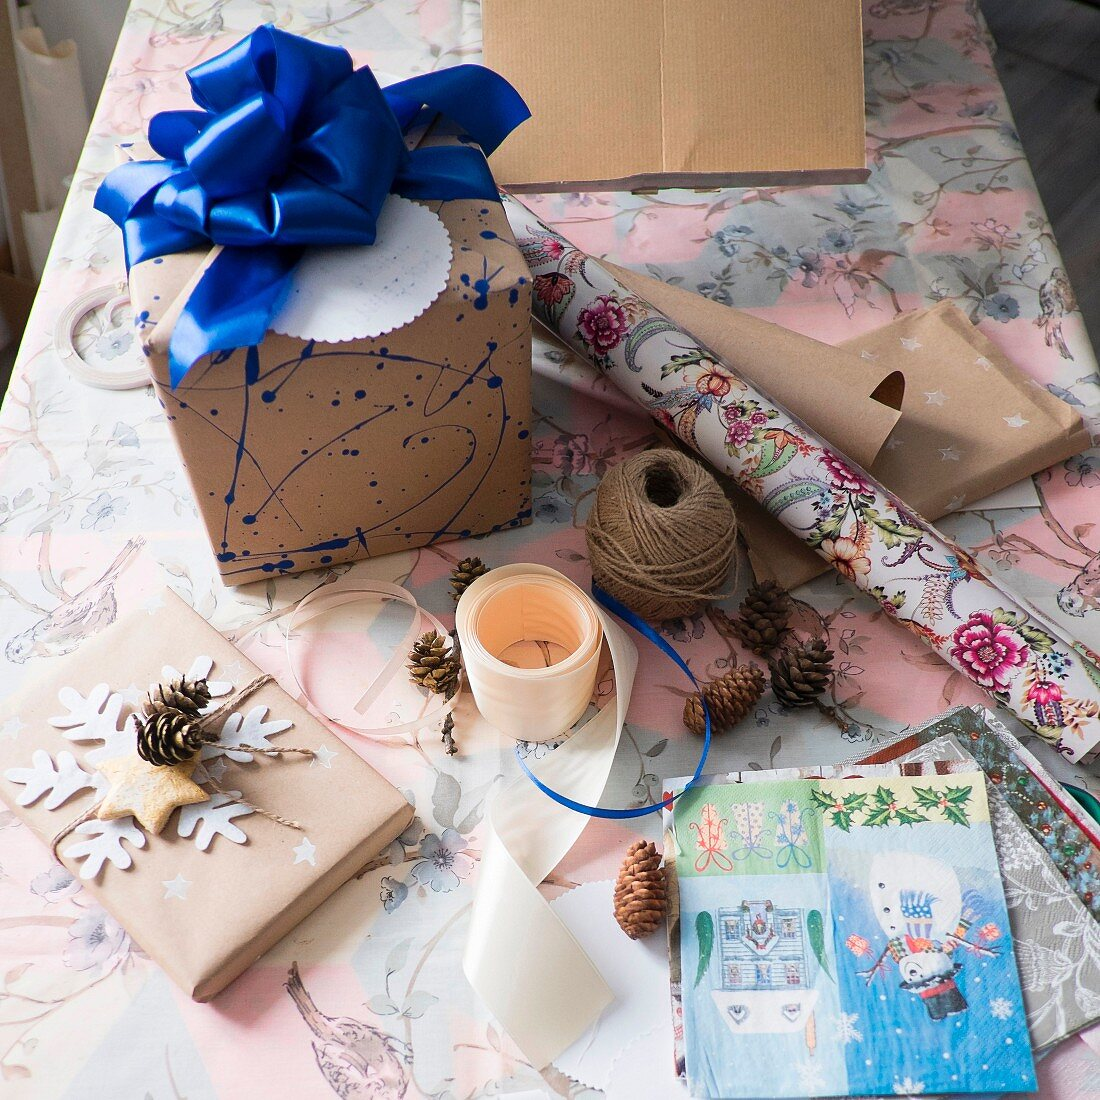 Wrapping materials and wrapped gift with blue ribbon